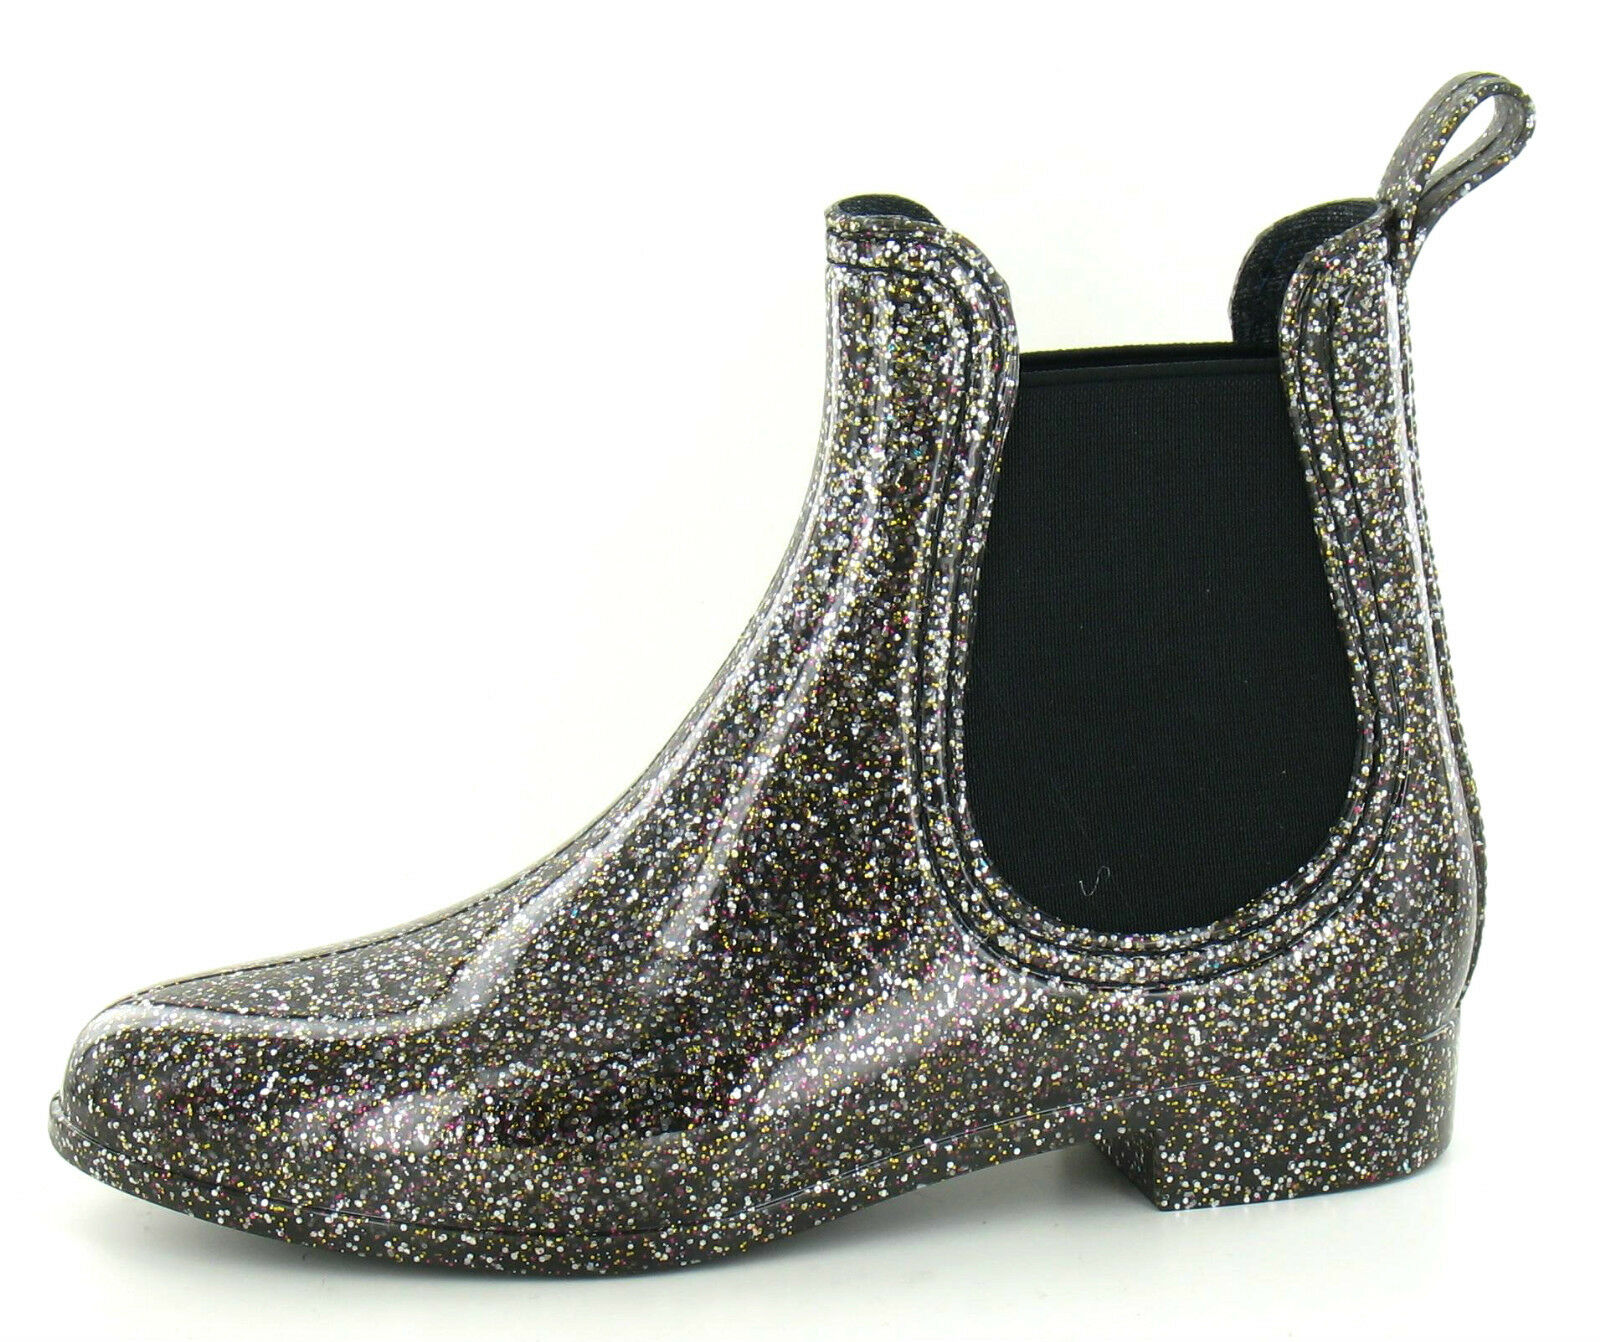 Ladies Black Glitter Ankle Wellys with Elastic Gussets  1216